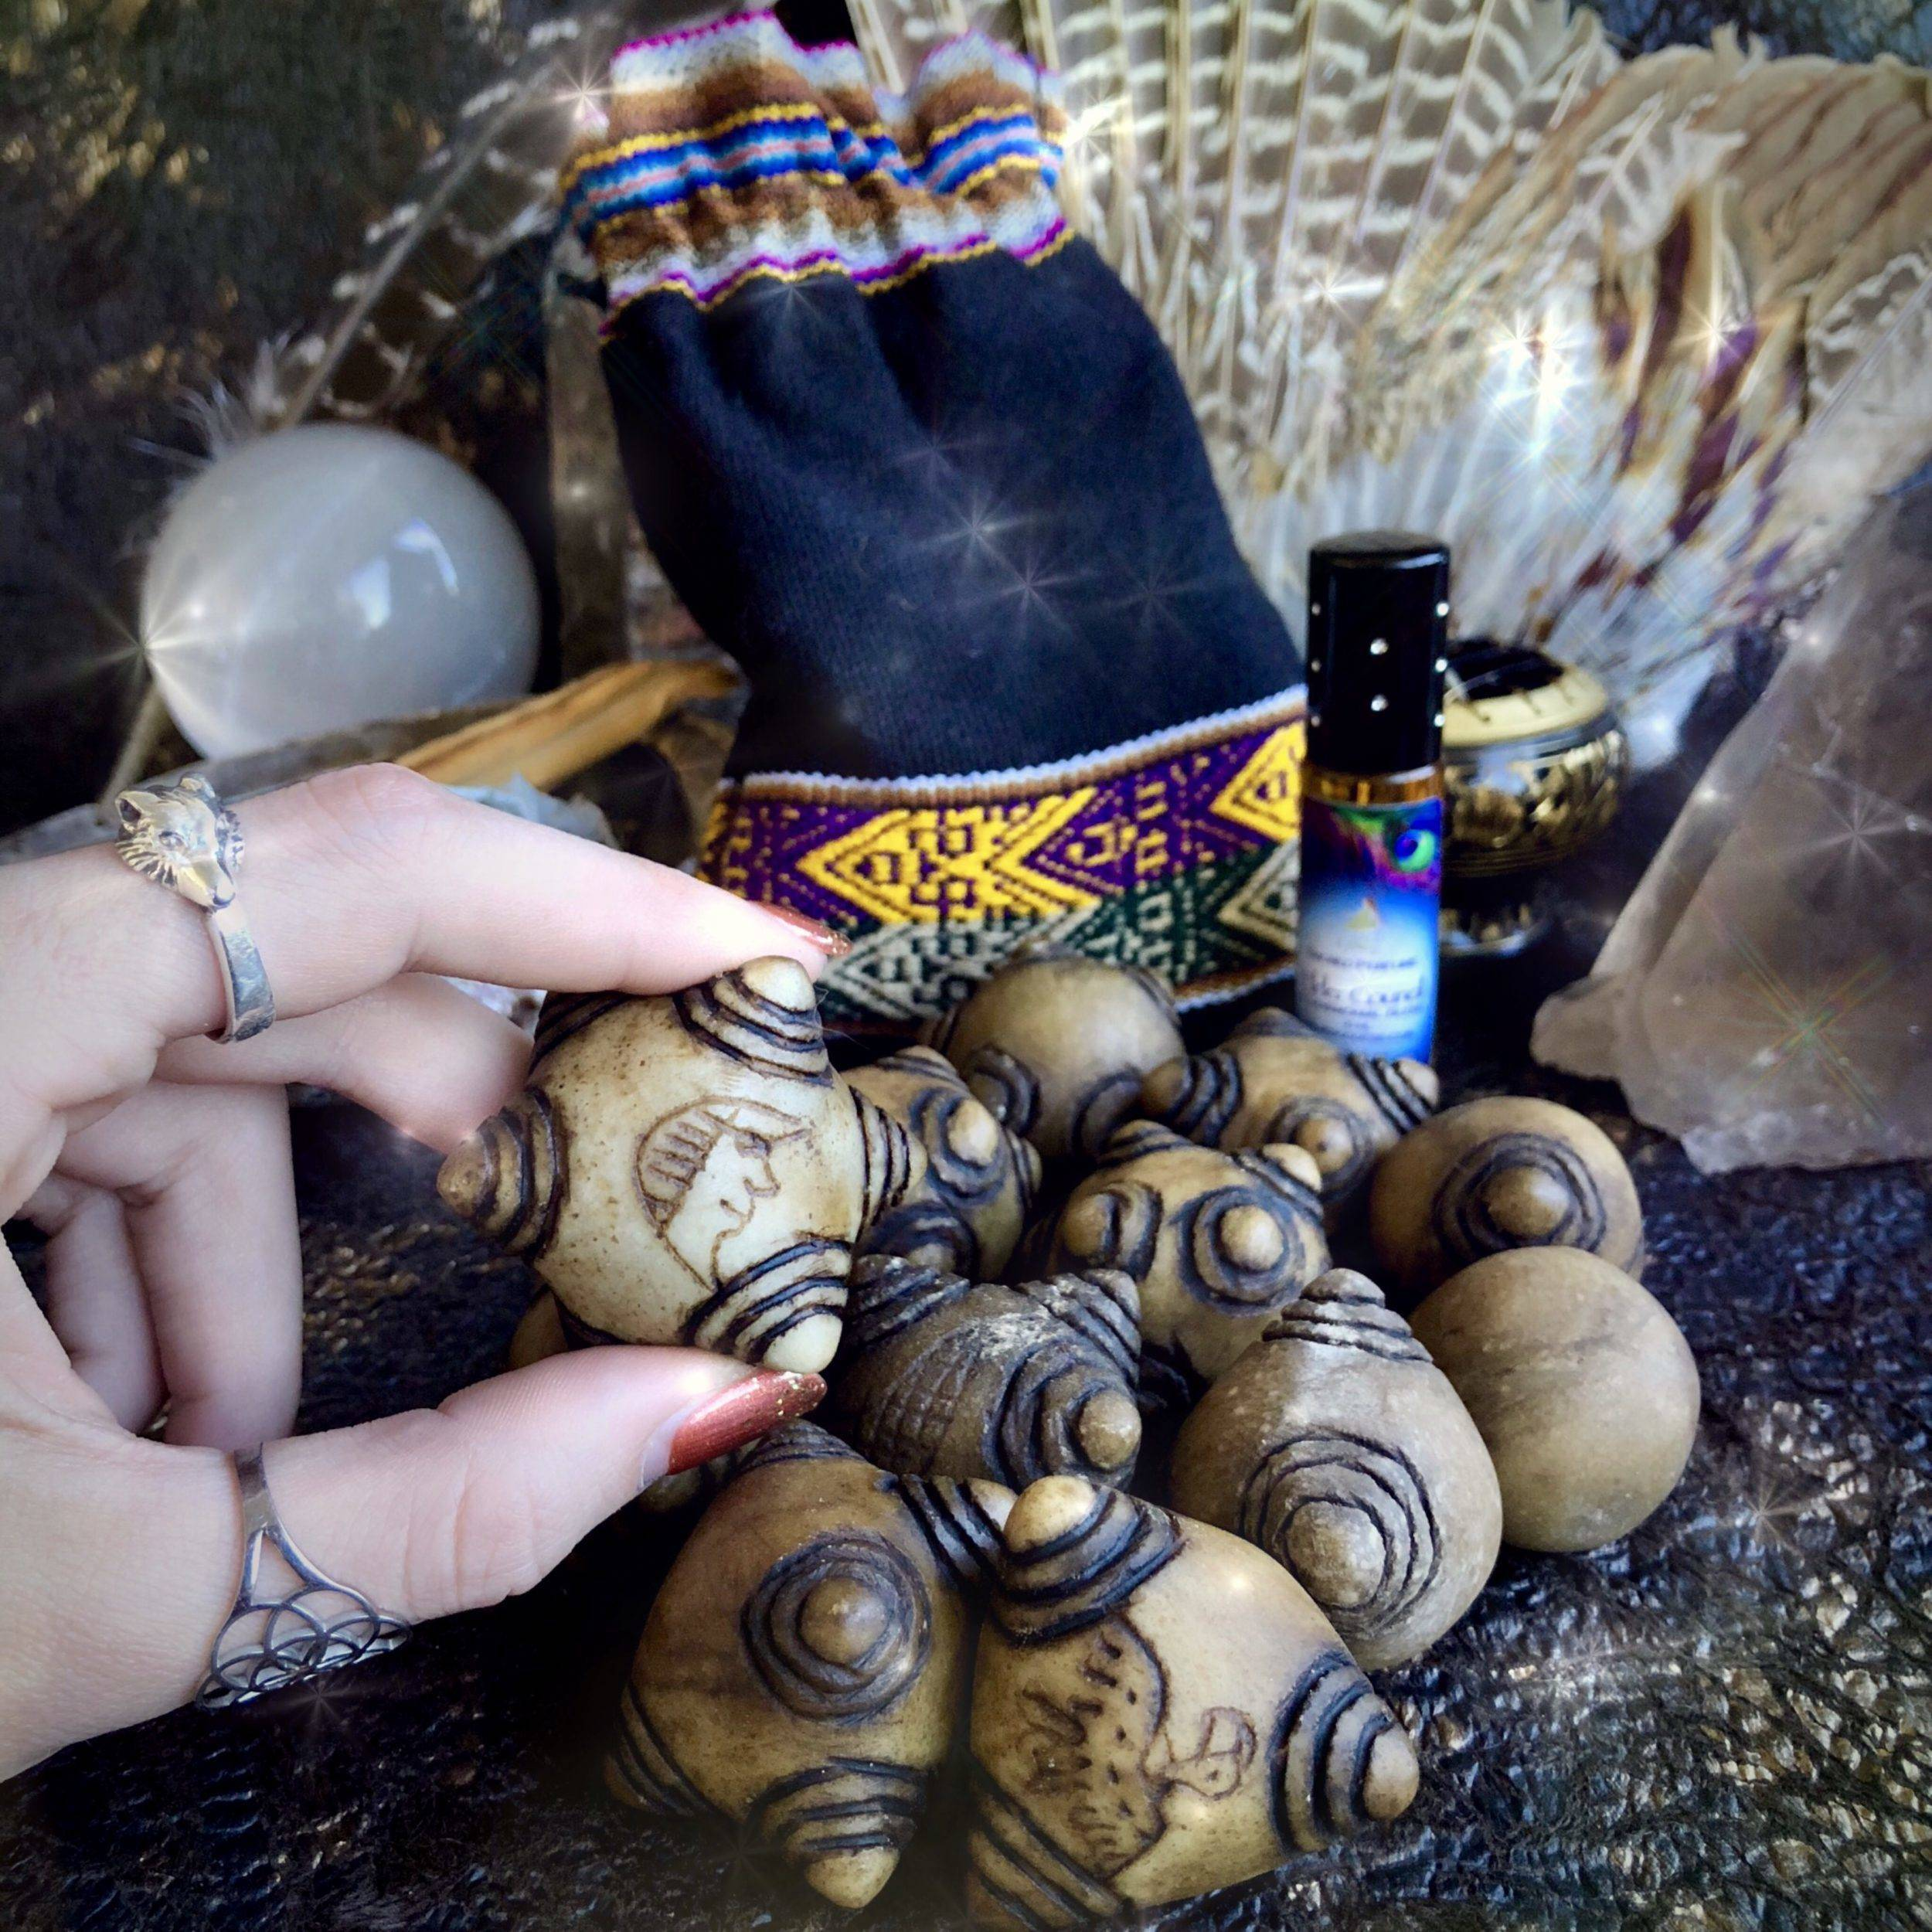 12_Pointed_Chumpi_Stones_with_Elder_Council_Perfume_2of3_10_25